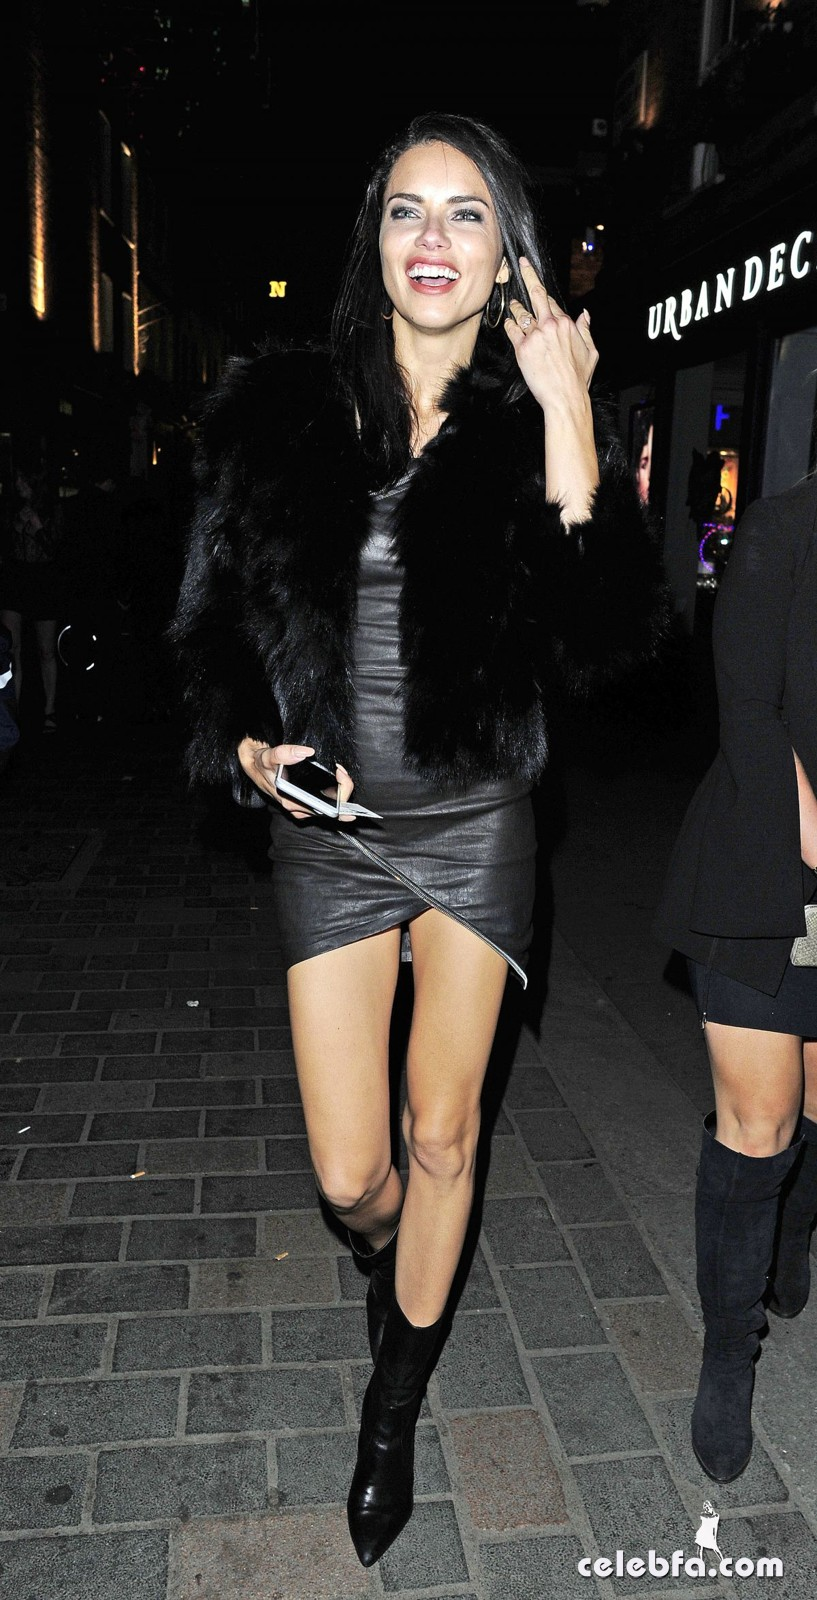 adriana-lima-night-out-in-london-2